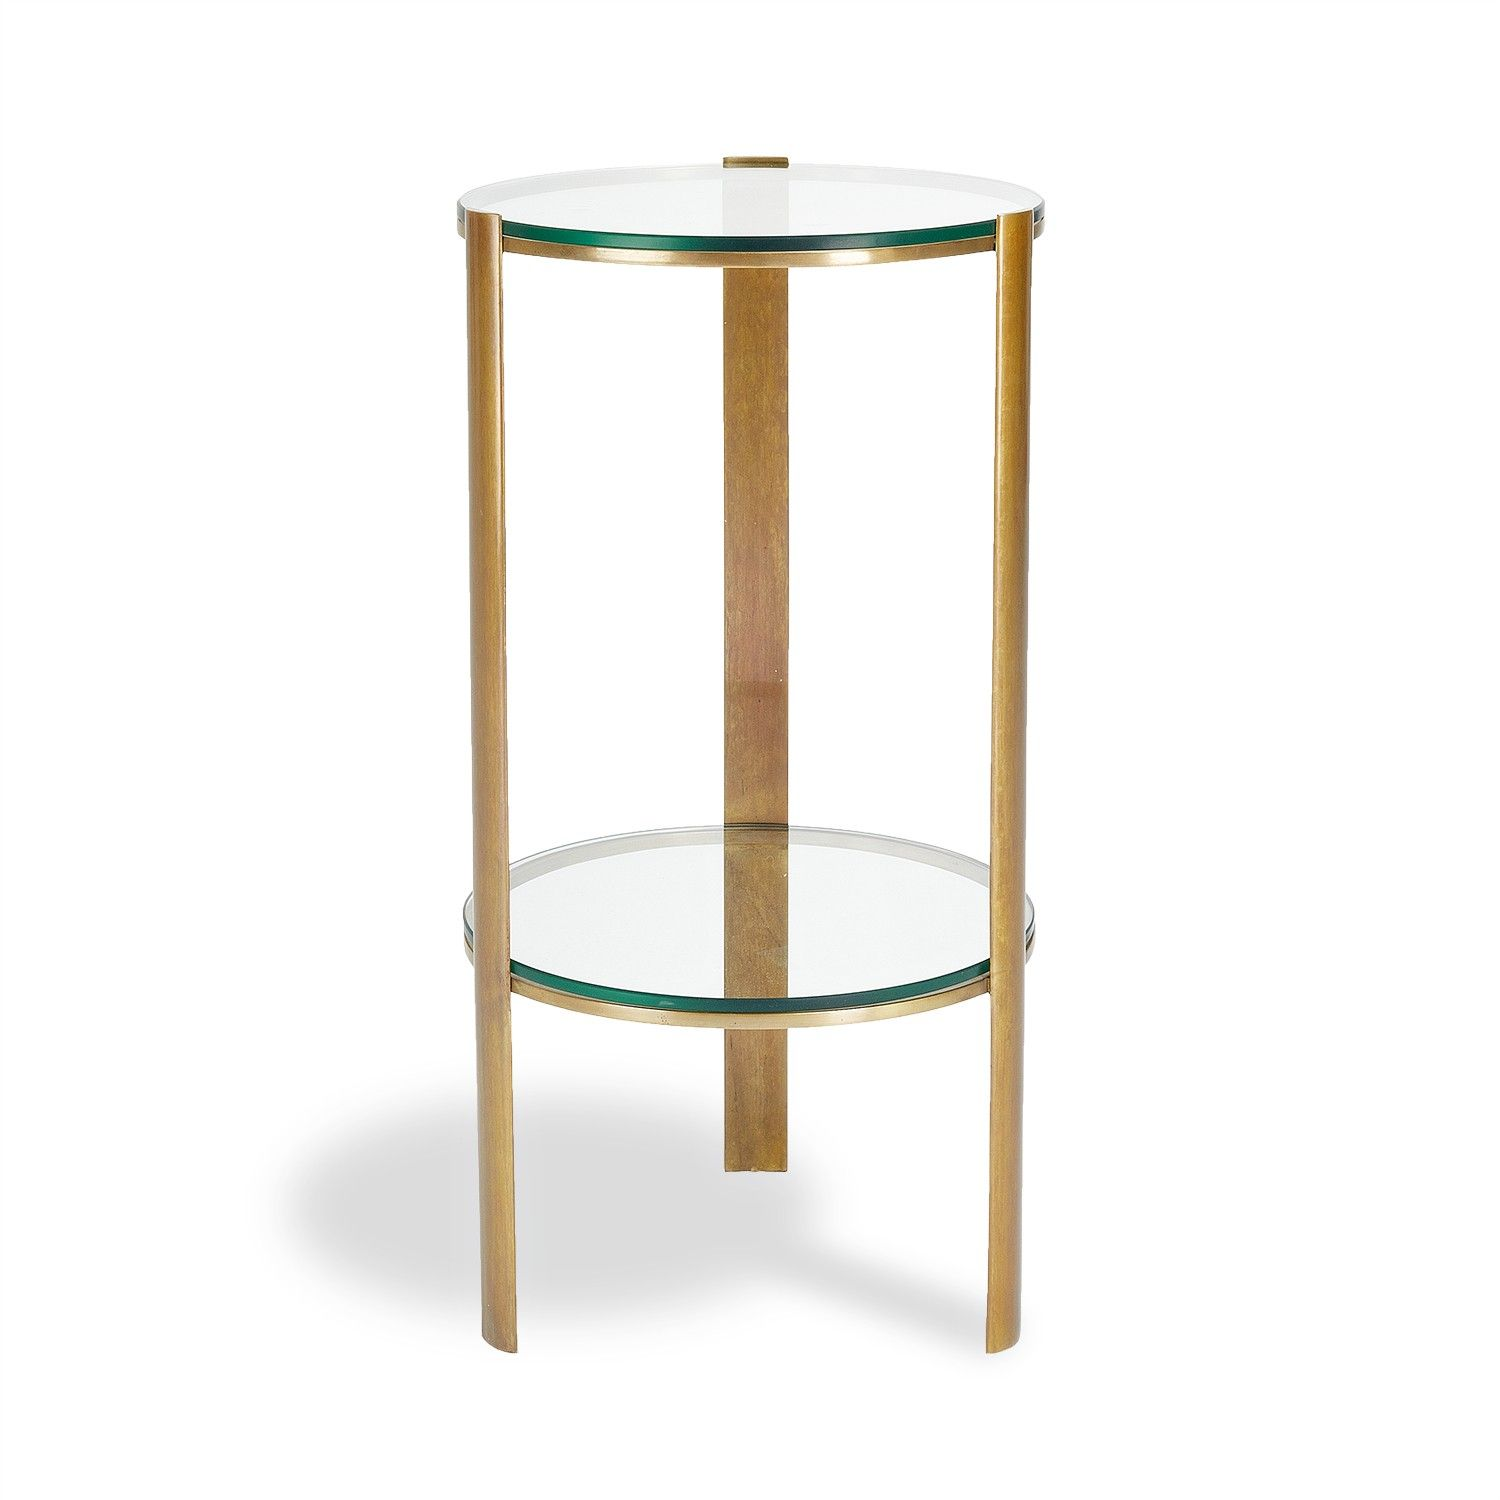 Beau Classic Brass Round Side Table